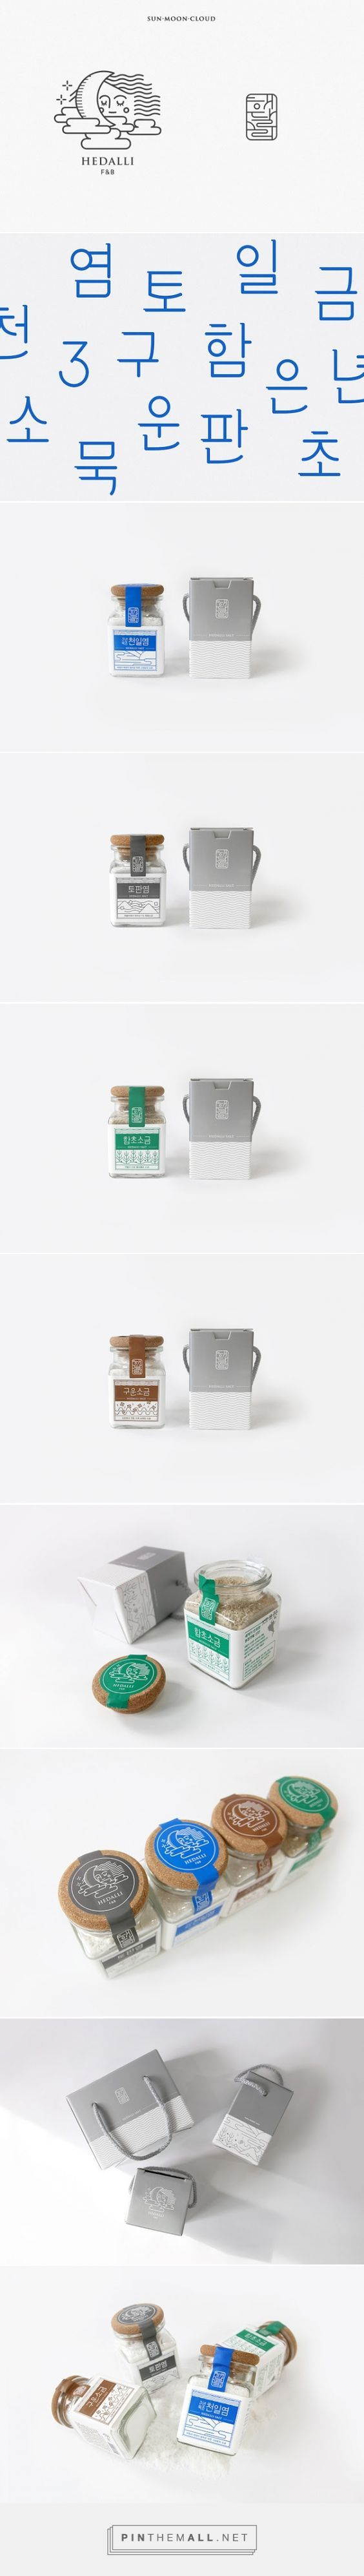 #Korean Hedali #Salt #packaging designed by Triangle Studio - http://www.packagingoftheworld.com/2015/10/hedali-salt.html: